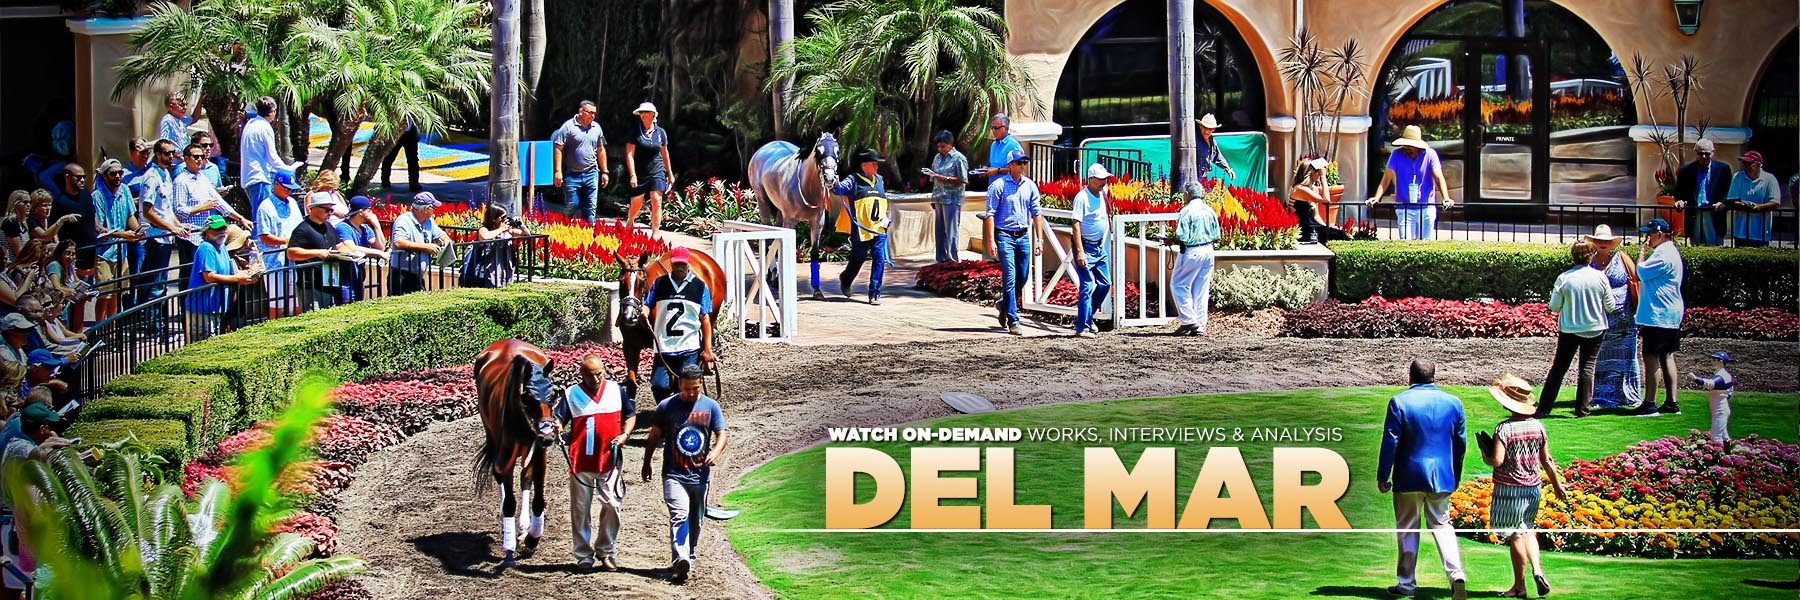 Jeff Siegel's Blog: Del Mar Analysis & Wagering Strategies for Thursday, August 5, 2021